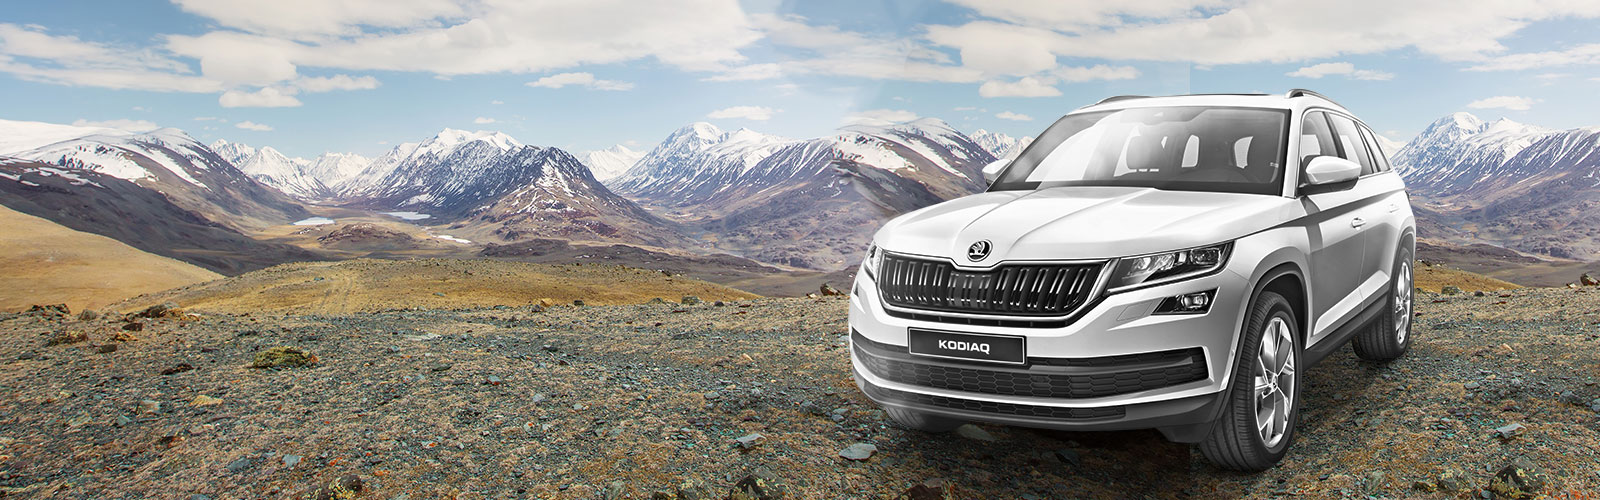 Kodiaq Bild Skodamueller Background